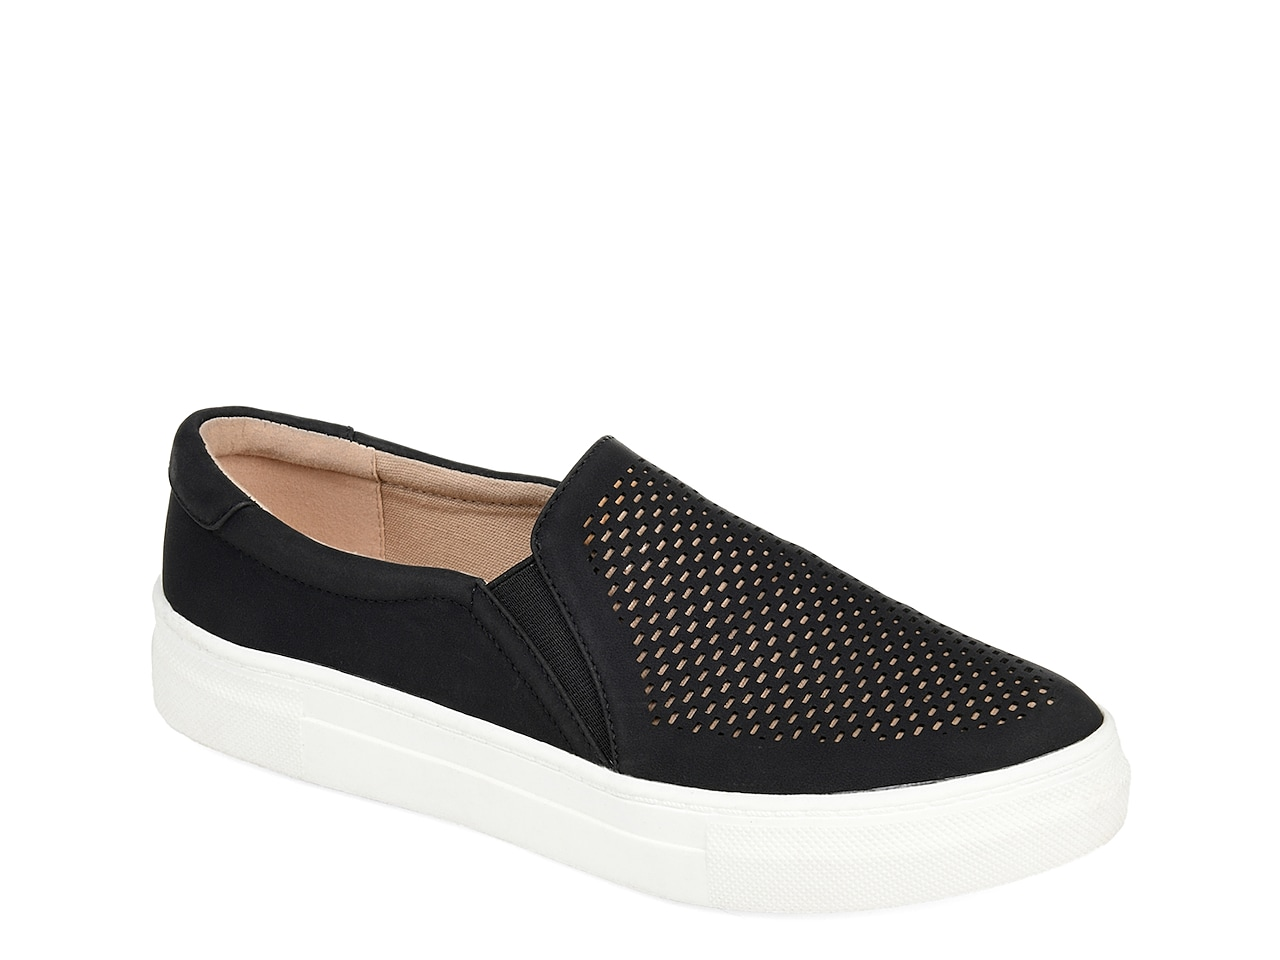 Details about  /Women/'s Journee Collection Comfort Faybia Sneaker Black